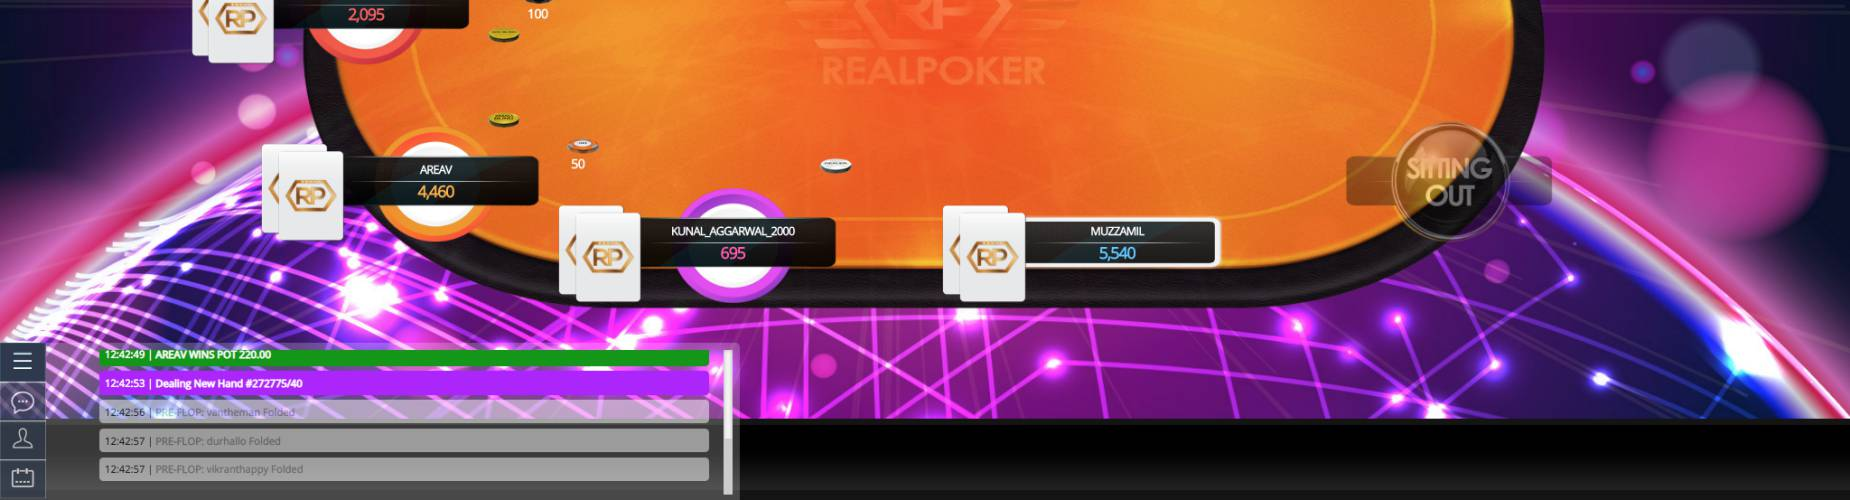 Realpoker.in - Understanding Our Platform